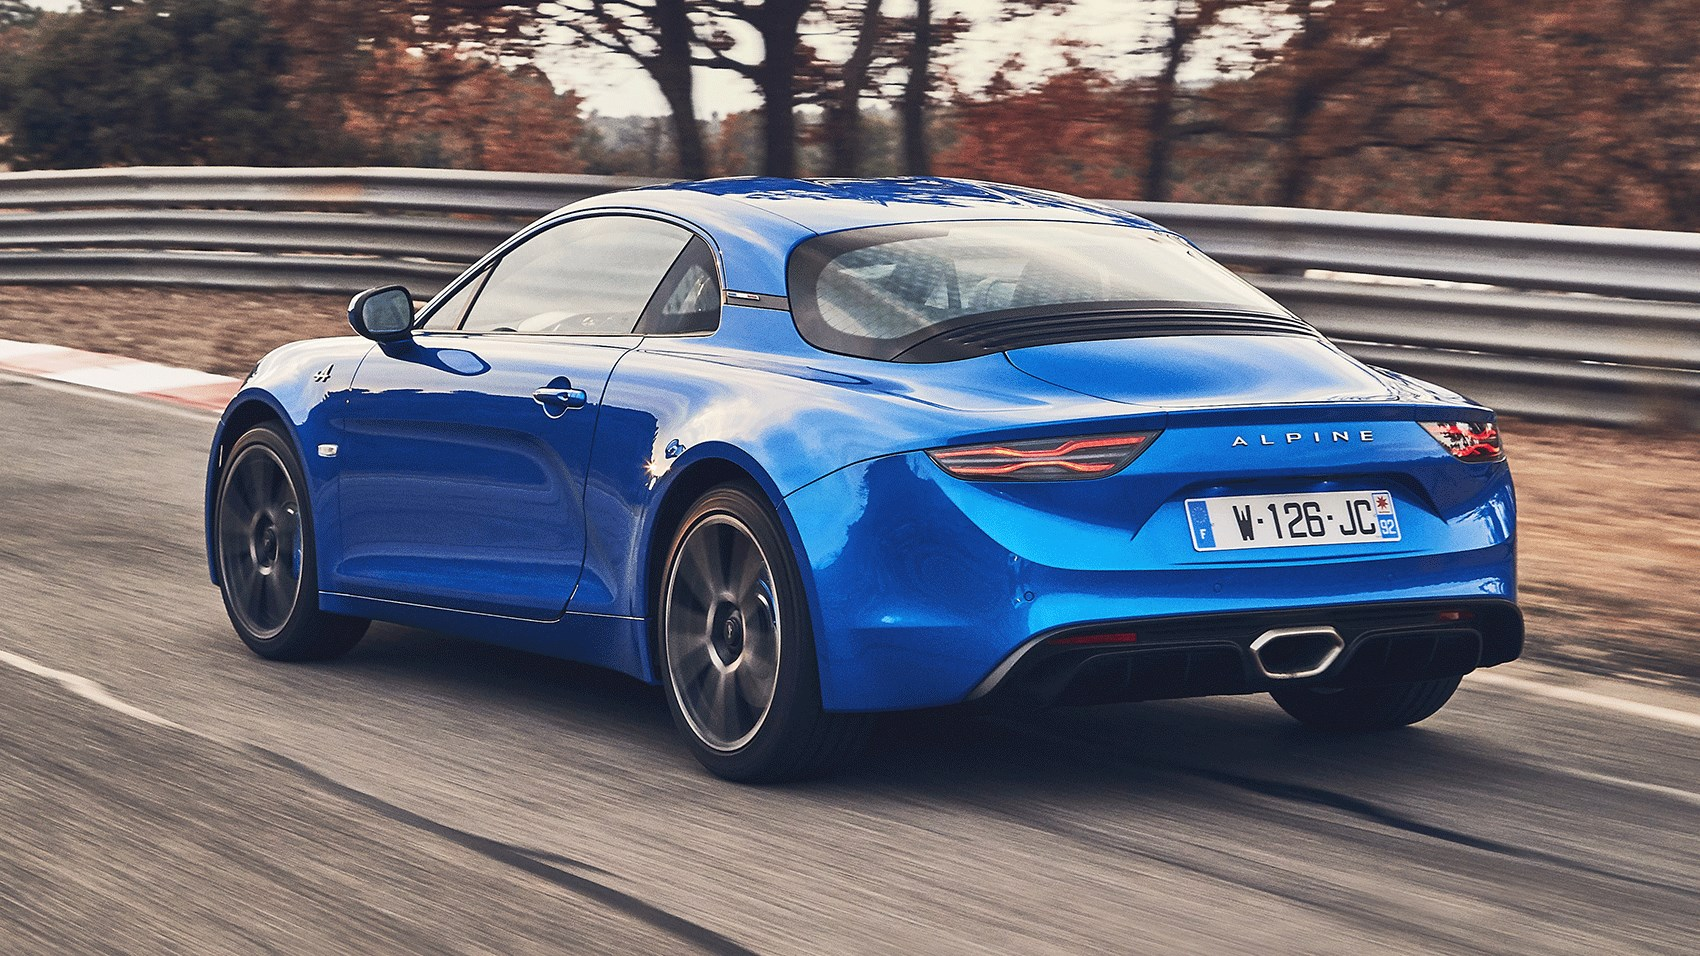 Alpine A110 2018 Review Car Magazine Auto Lighting System Diagram 2017 Best Cars Reviews The Suspension Is By Aluminium Double Wishbones All Round Which Keeps Michelin Pilot Sport 4s In Better Contact With Road Fact Renault Says